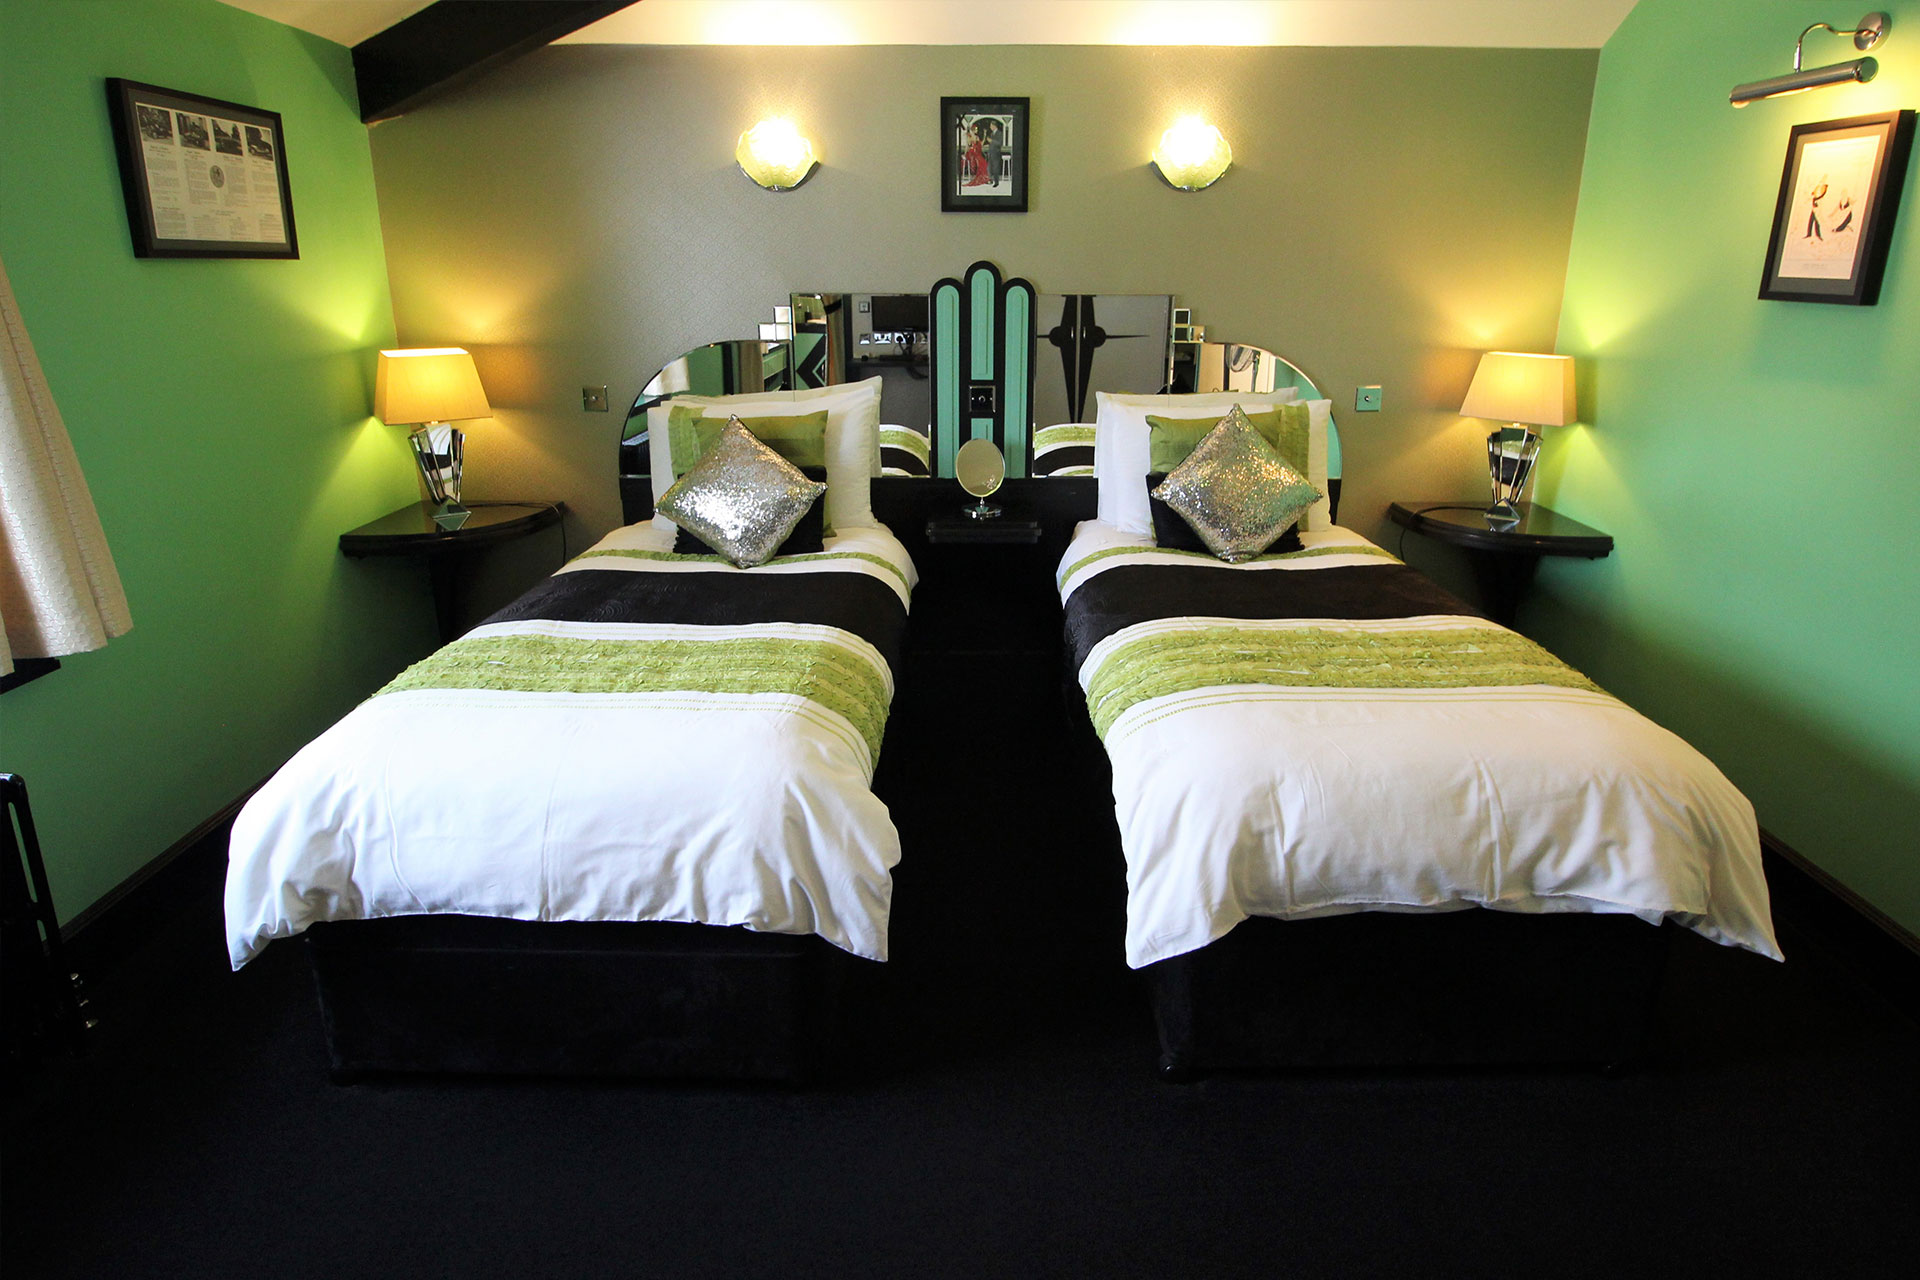 Bed And Breakfast Bishops Stortford The Pitstop Hotel Morgan Car Experience Tripadvisor 5